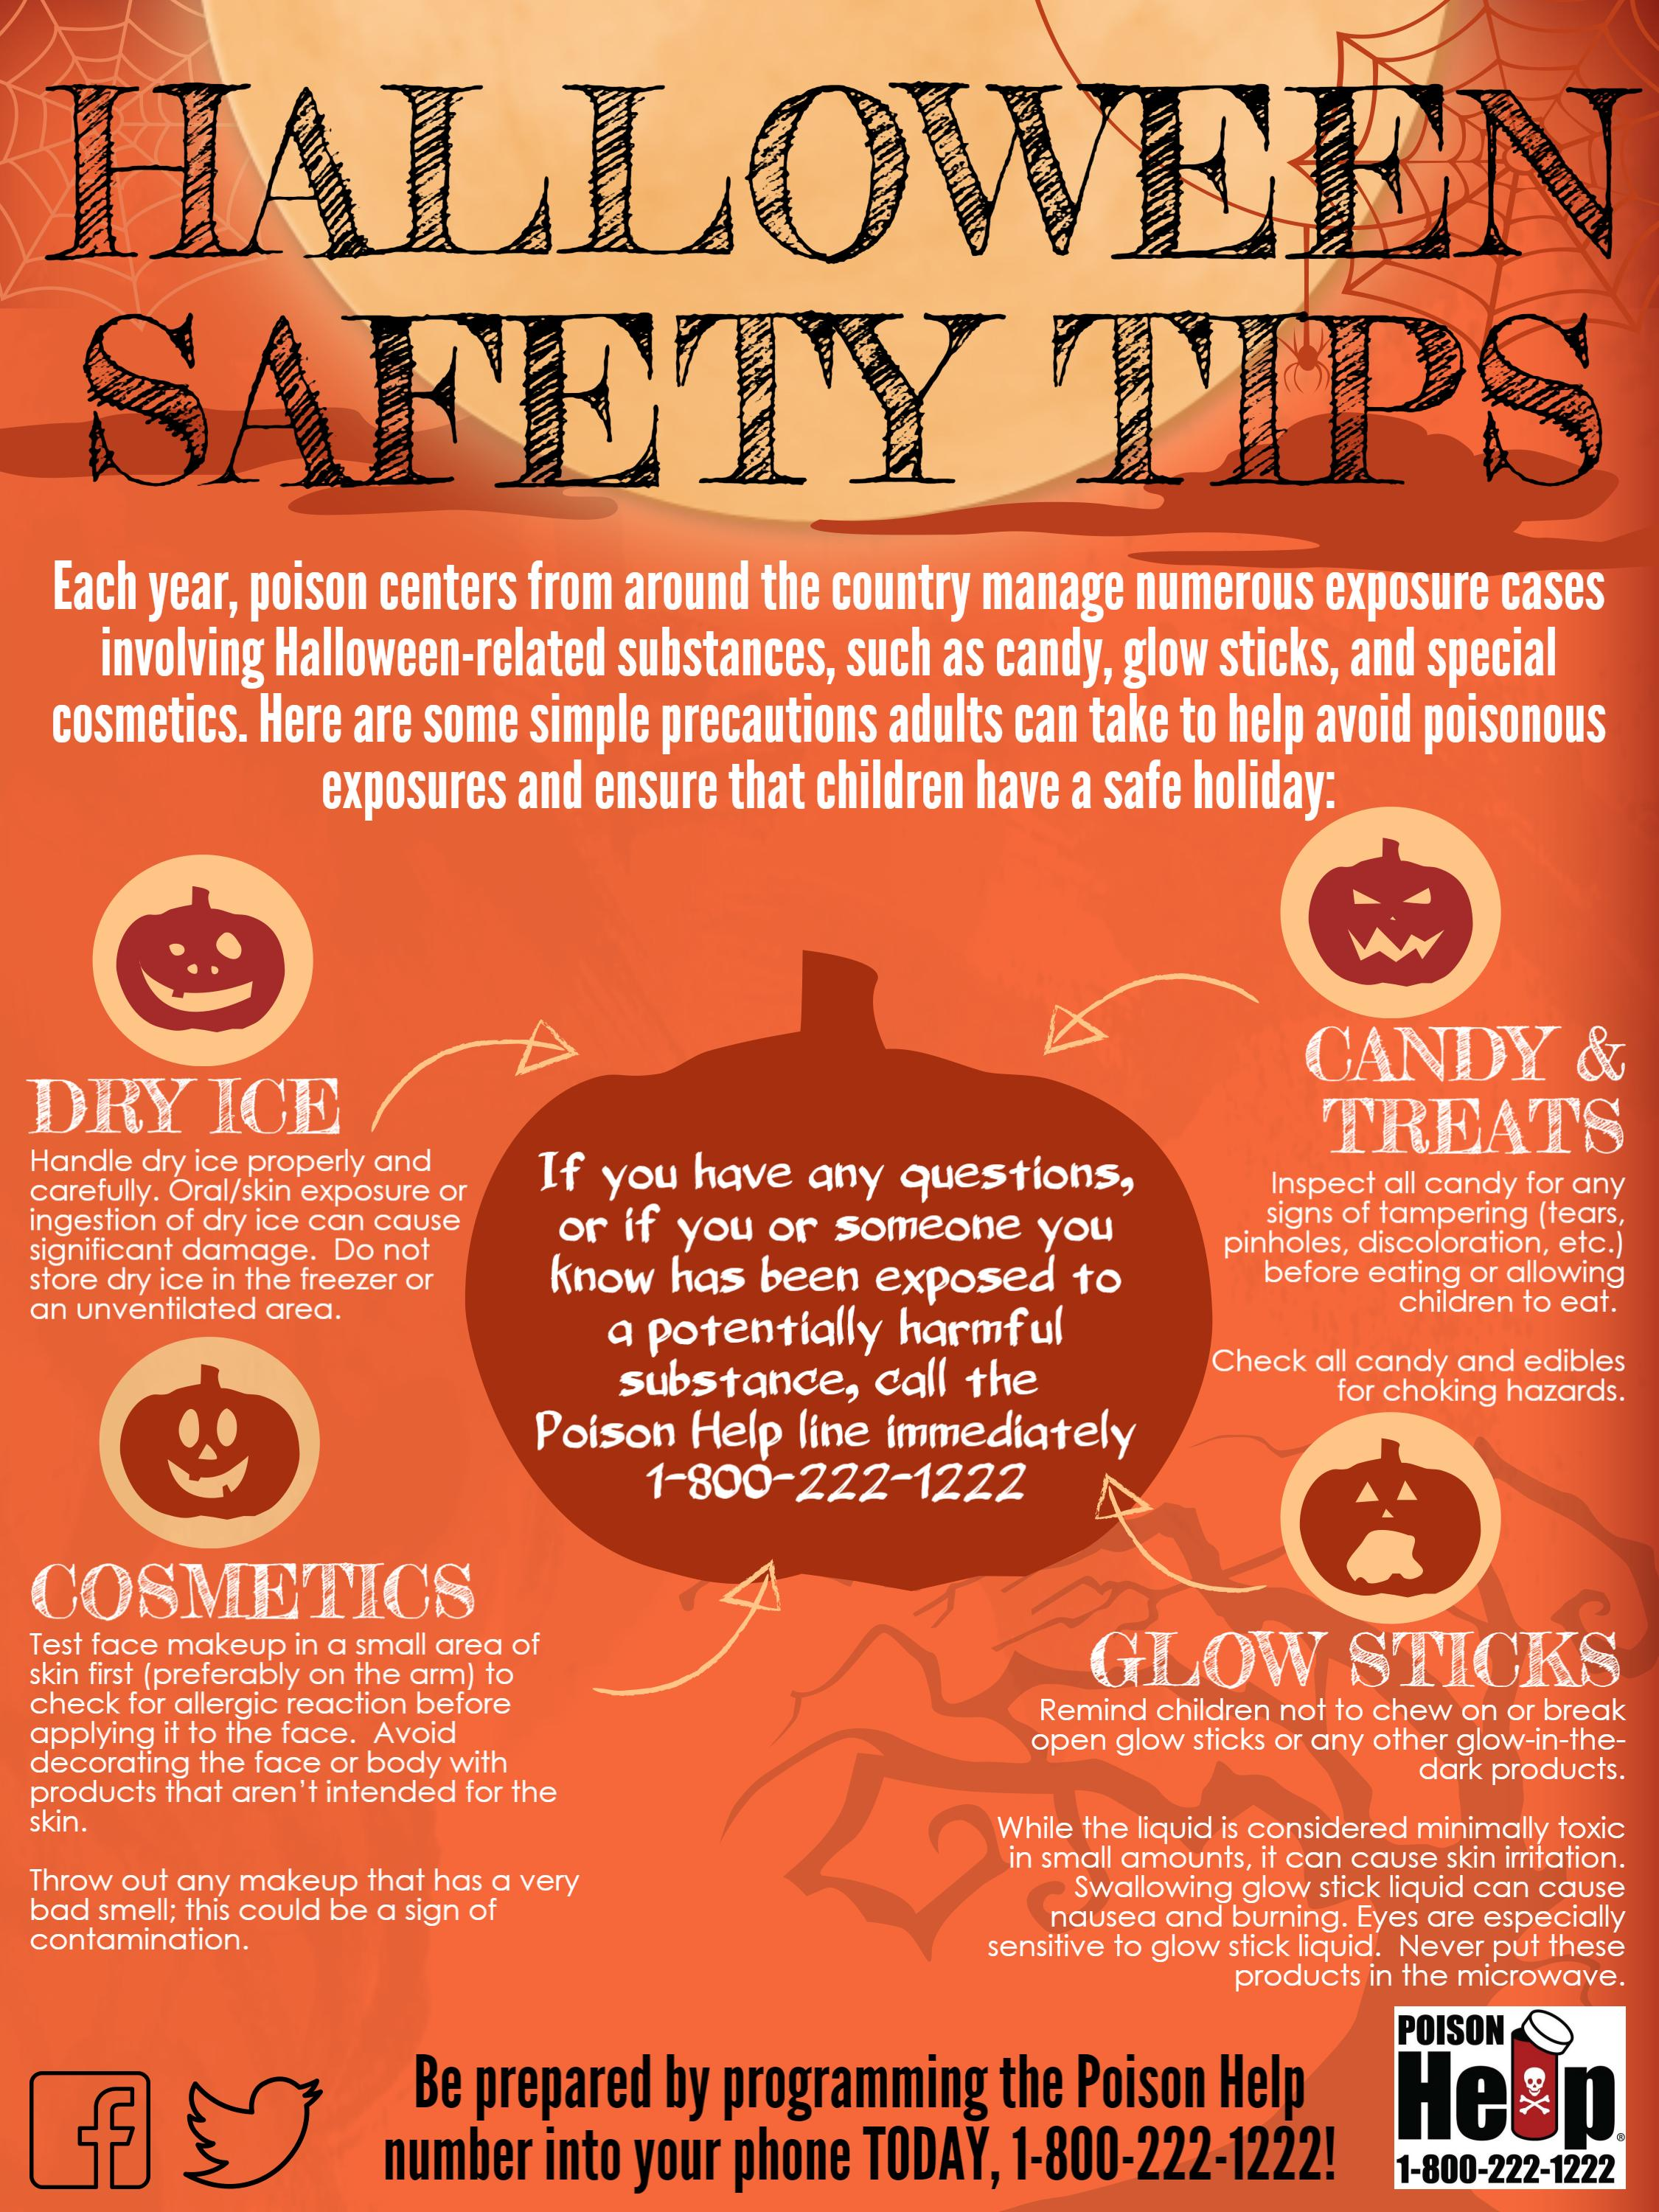 Halloween Safety Candy